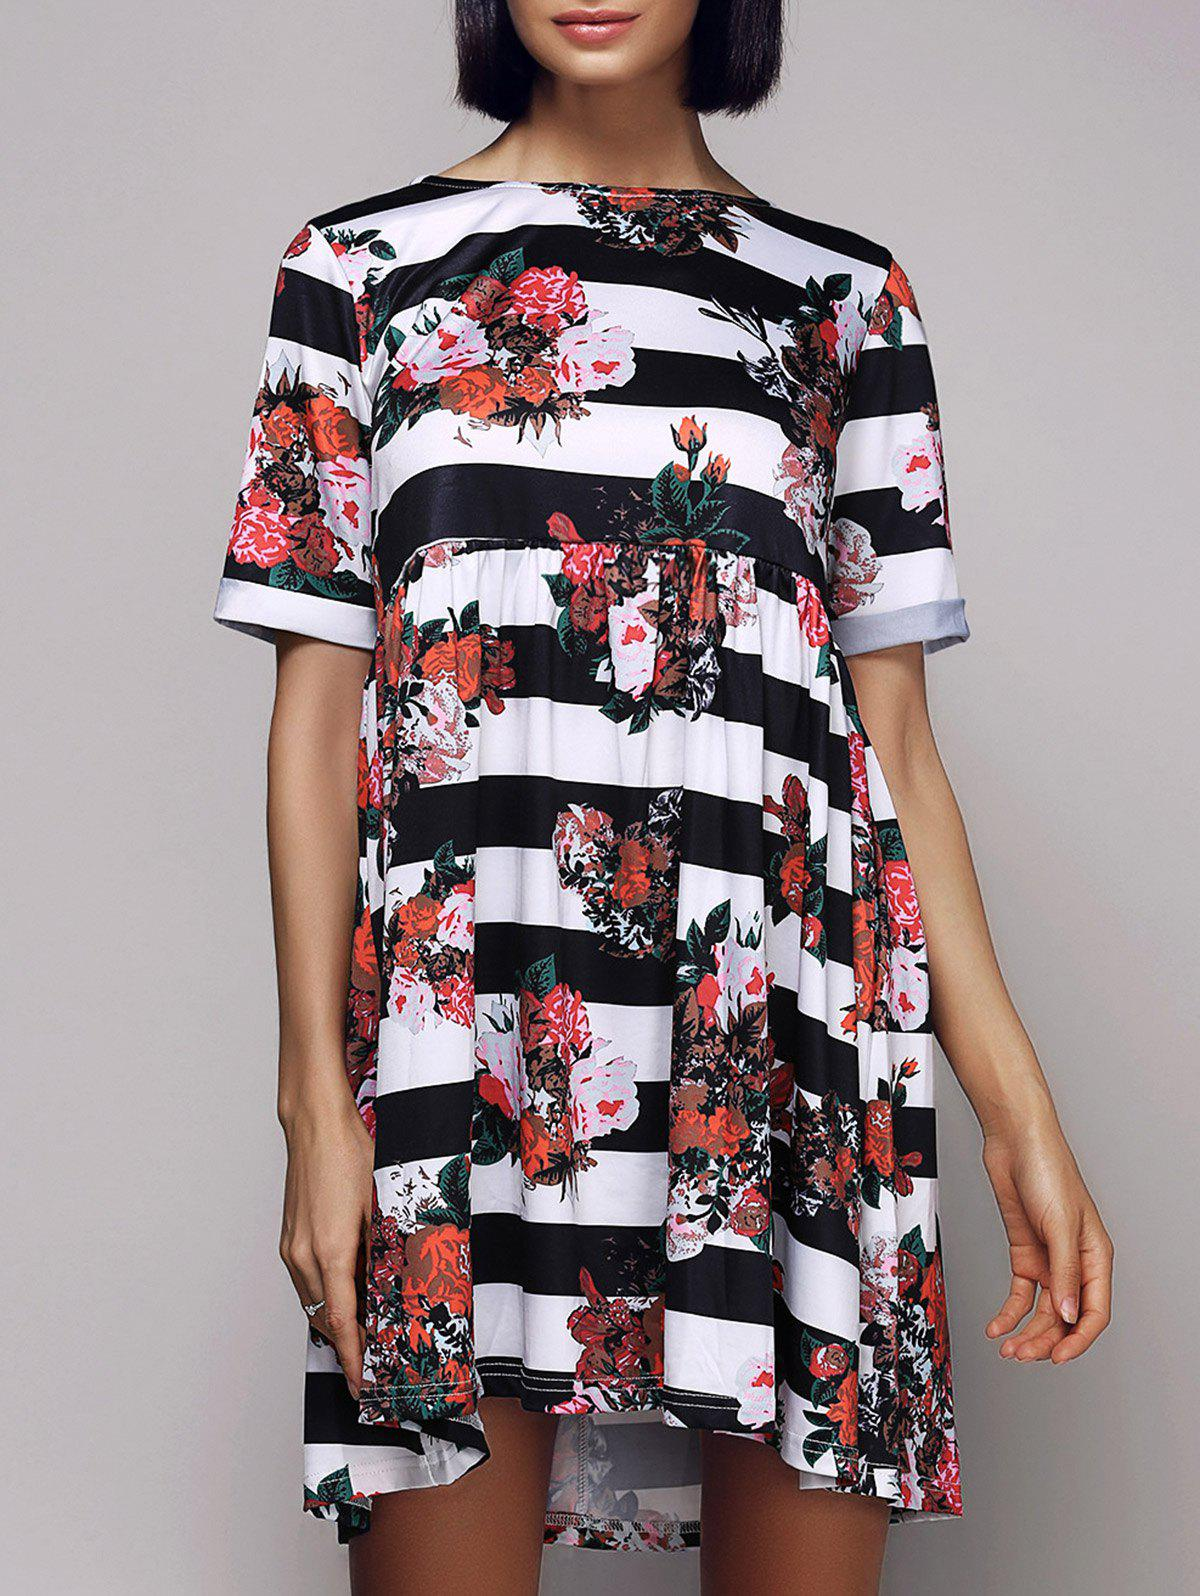 Casual Women's Short Sleeve Round Neck Striped Floral Dress